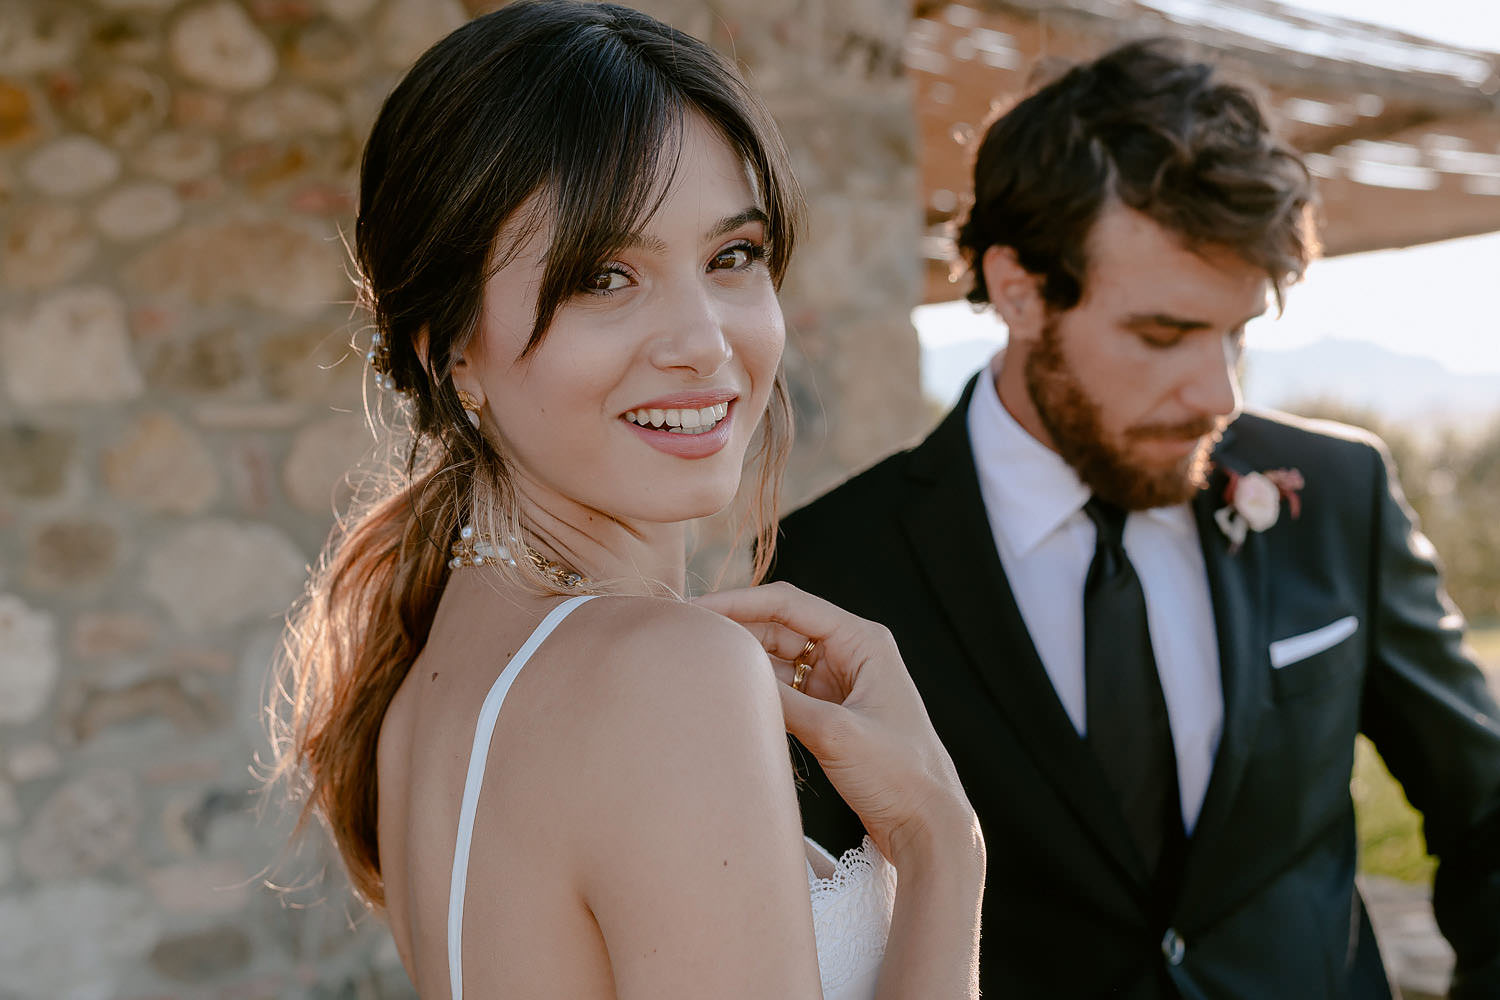 editorial intimate Wedding Inspiration Tuscan Rolling Hills bride and groom portrait in wedding dress suite